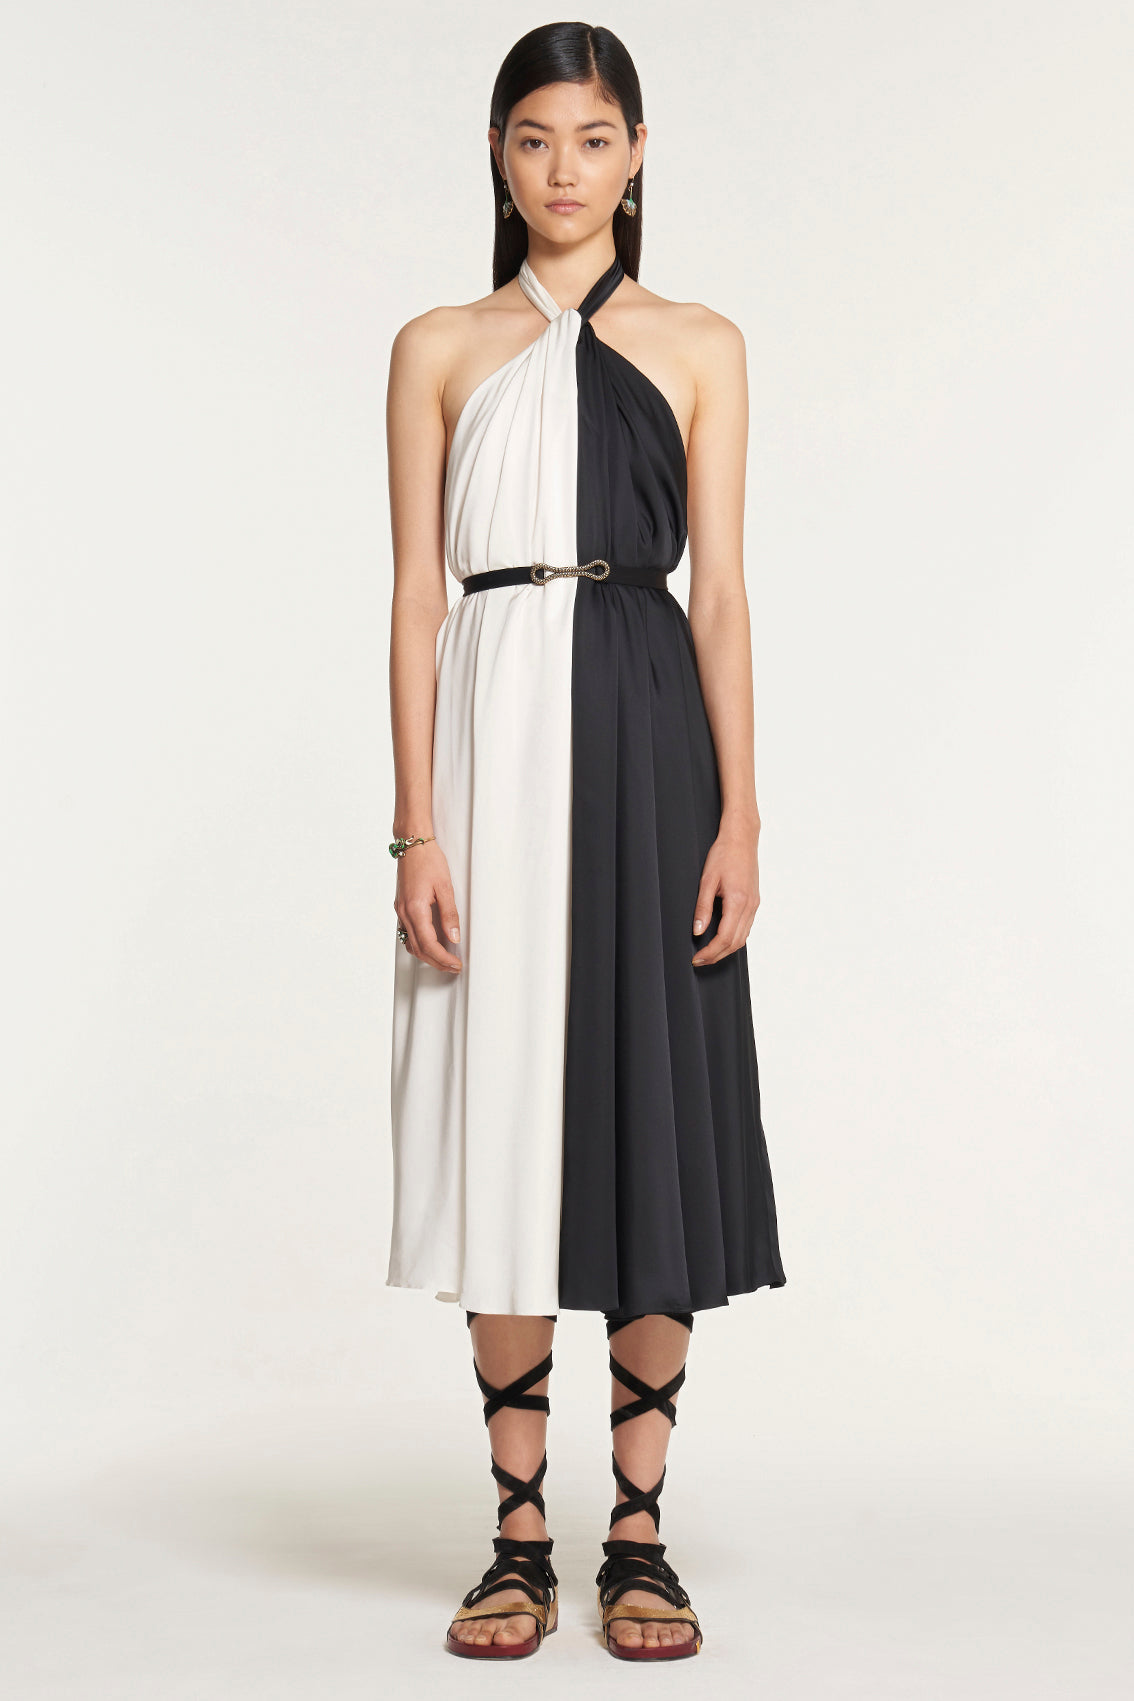 Contrast Black and White Tie Neck Dress